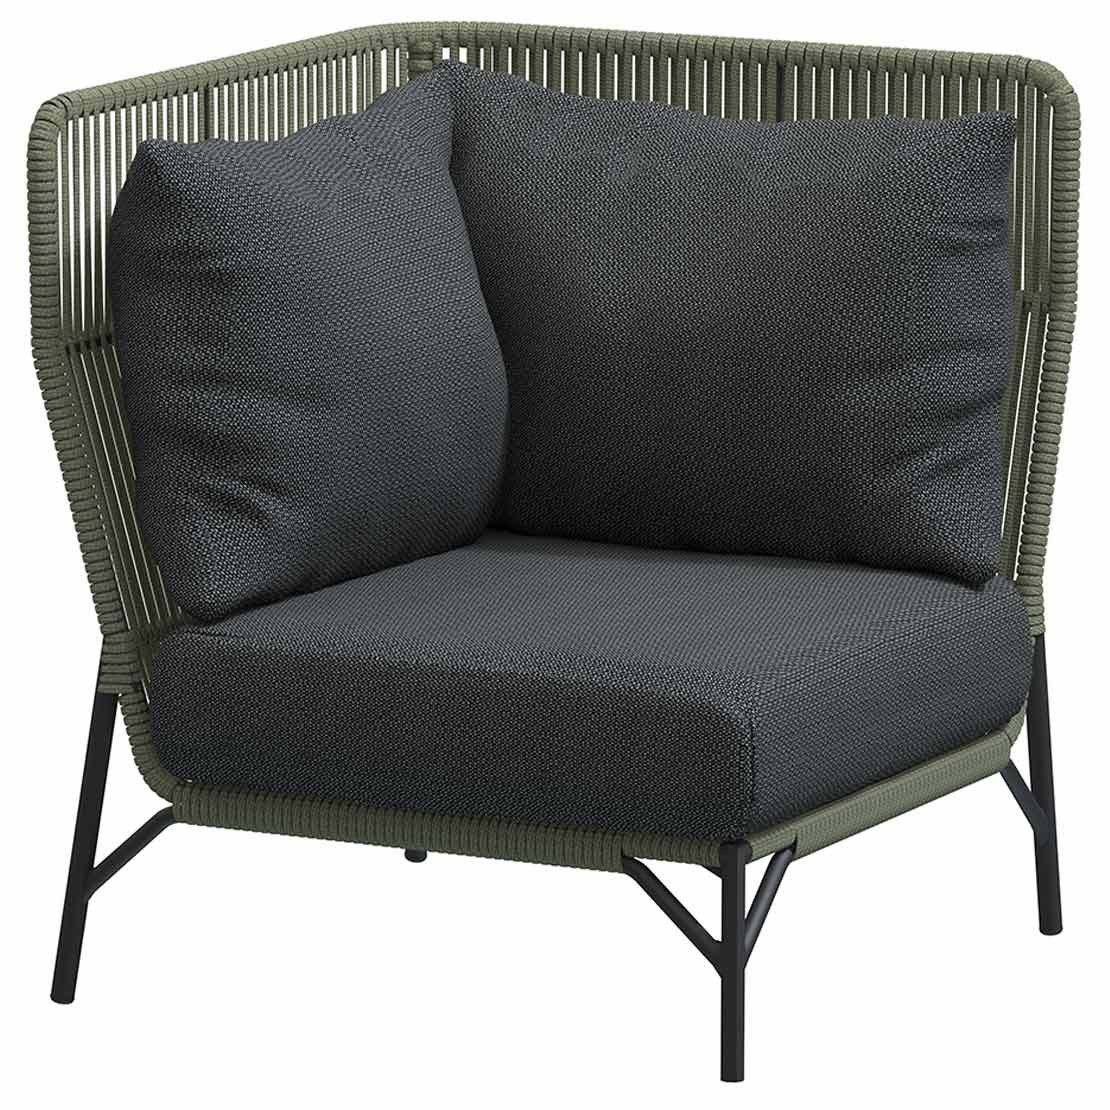 Altoro Modular corner Green with 3 cushions